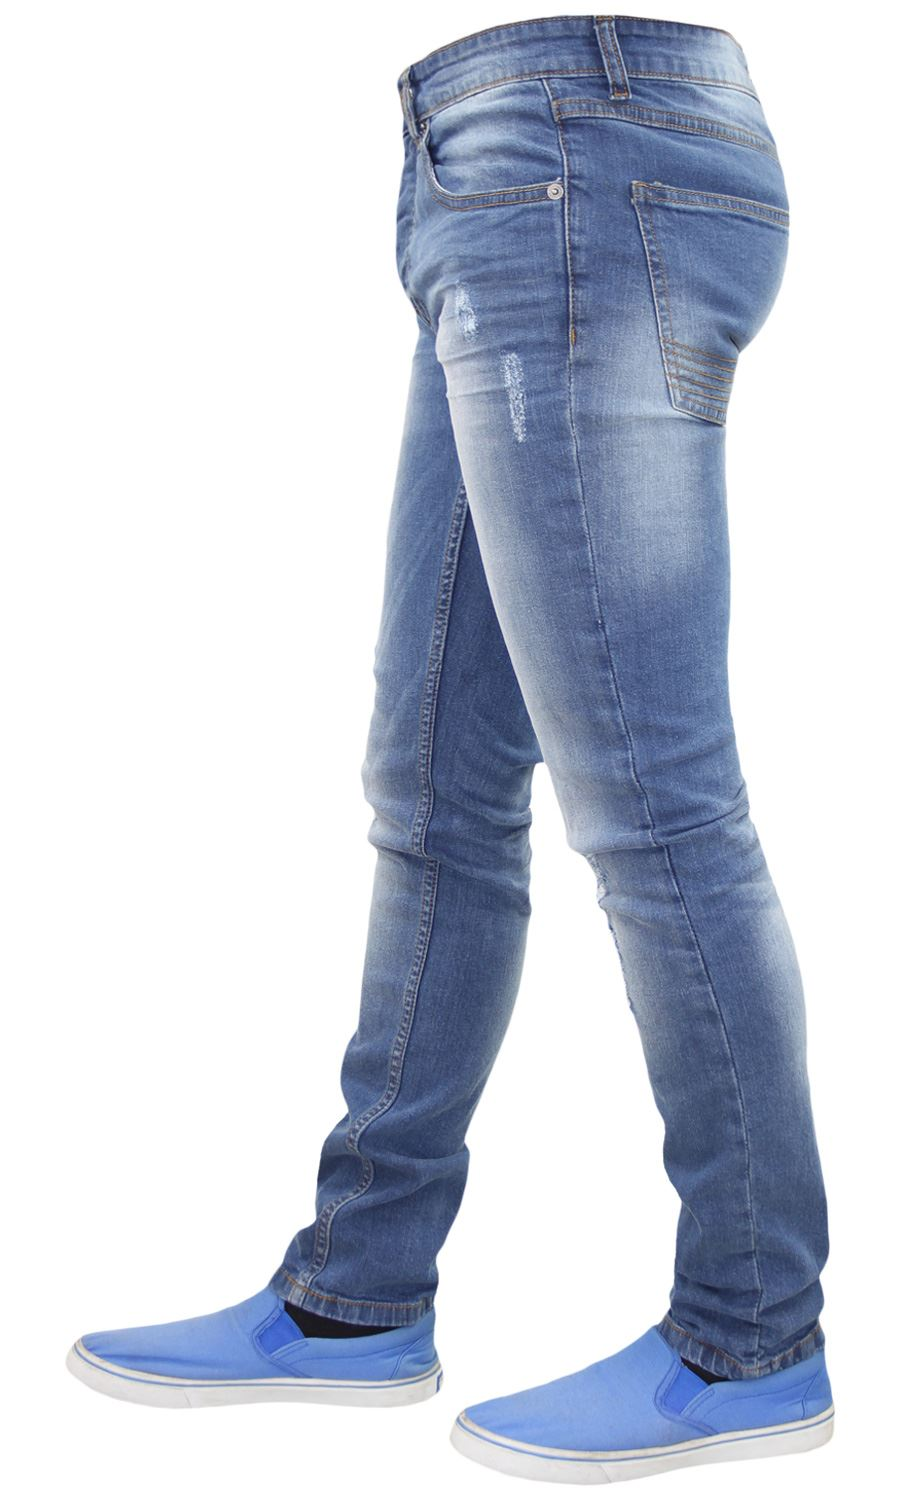 Mens-Skinny-Stretch-Ripped-Jeans-Slim-Fit-Casual-Trousers-Denim-Pants-All-Sizes thumbnail 19